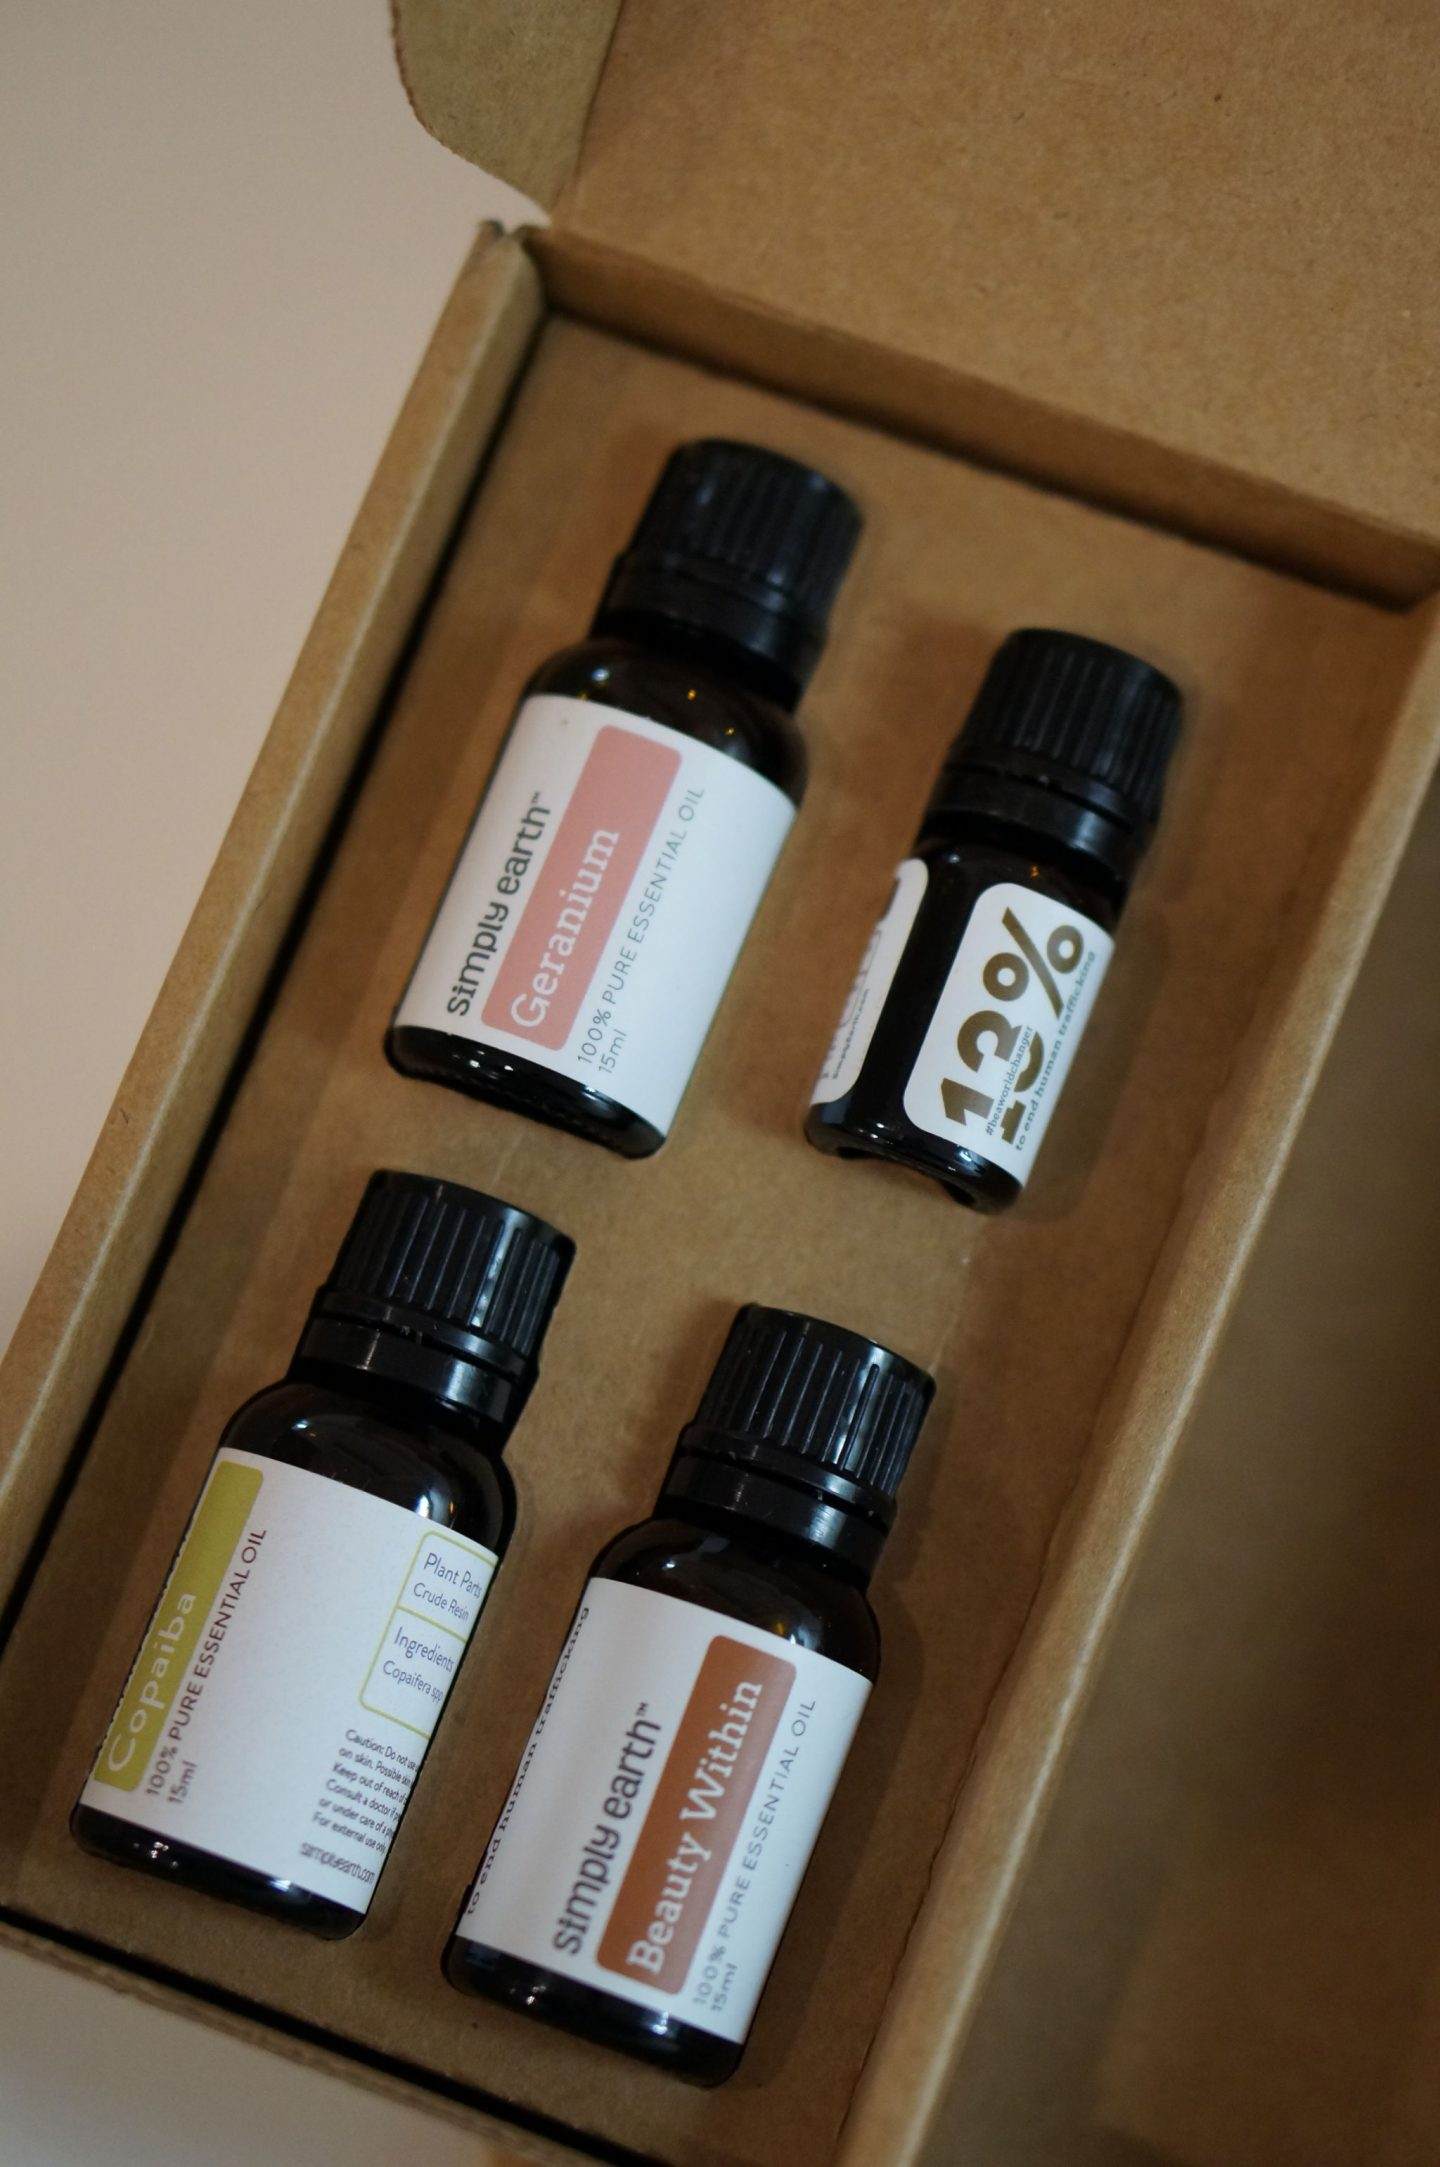 North Carolina blogger Rebecca Lately shares her Simply Earth February 2019 box, along with the DIY essential oil recipes she's made!